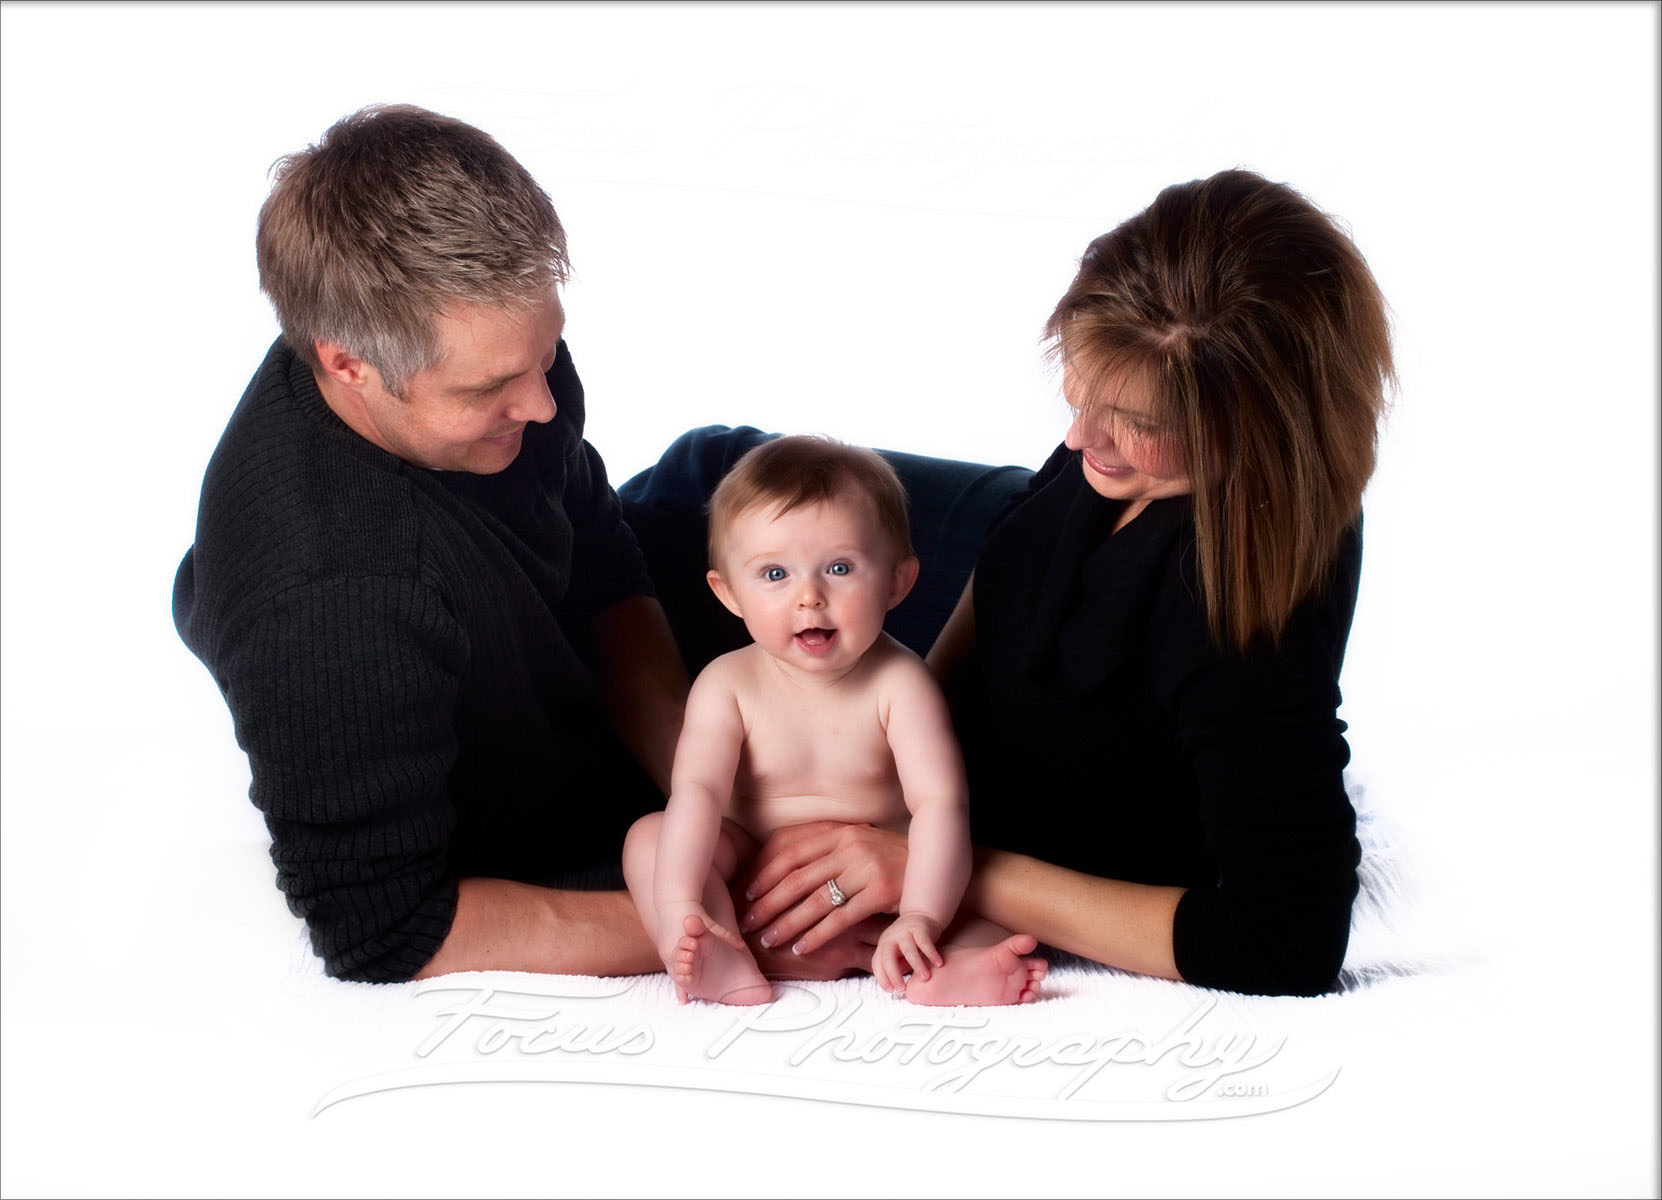 baby with big eyes looks at camera while parents look at baby in portrait on white in Maine family photo studio